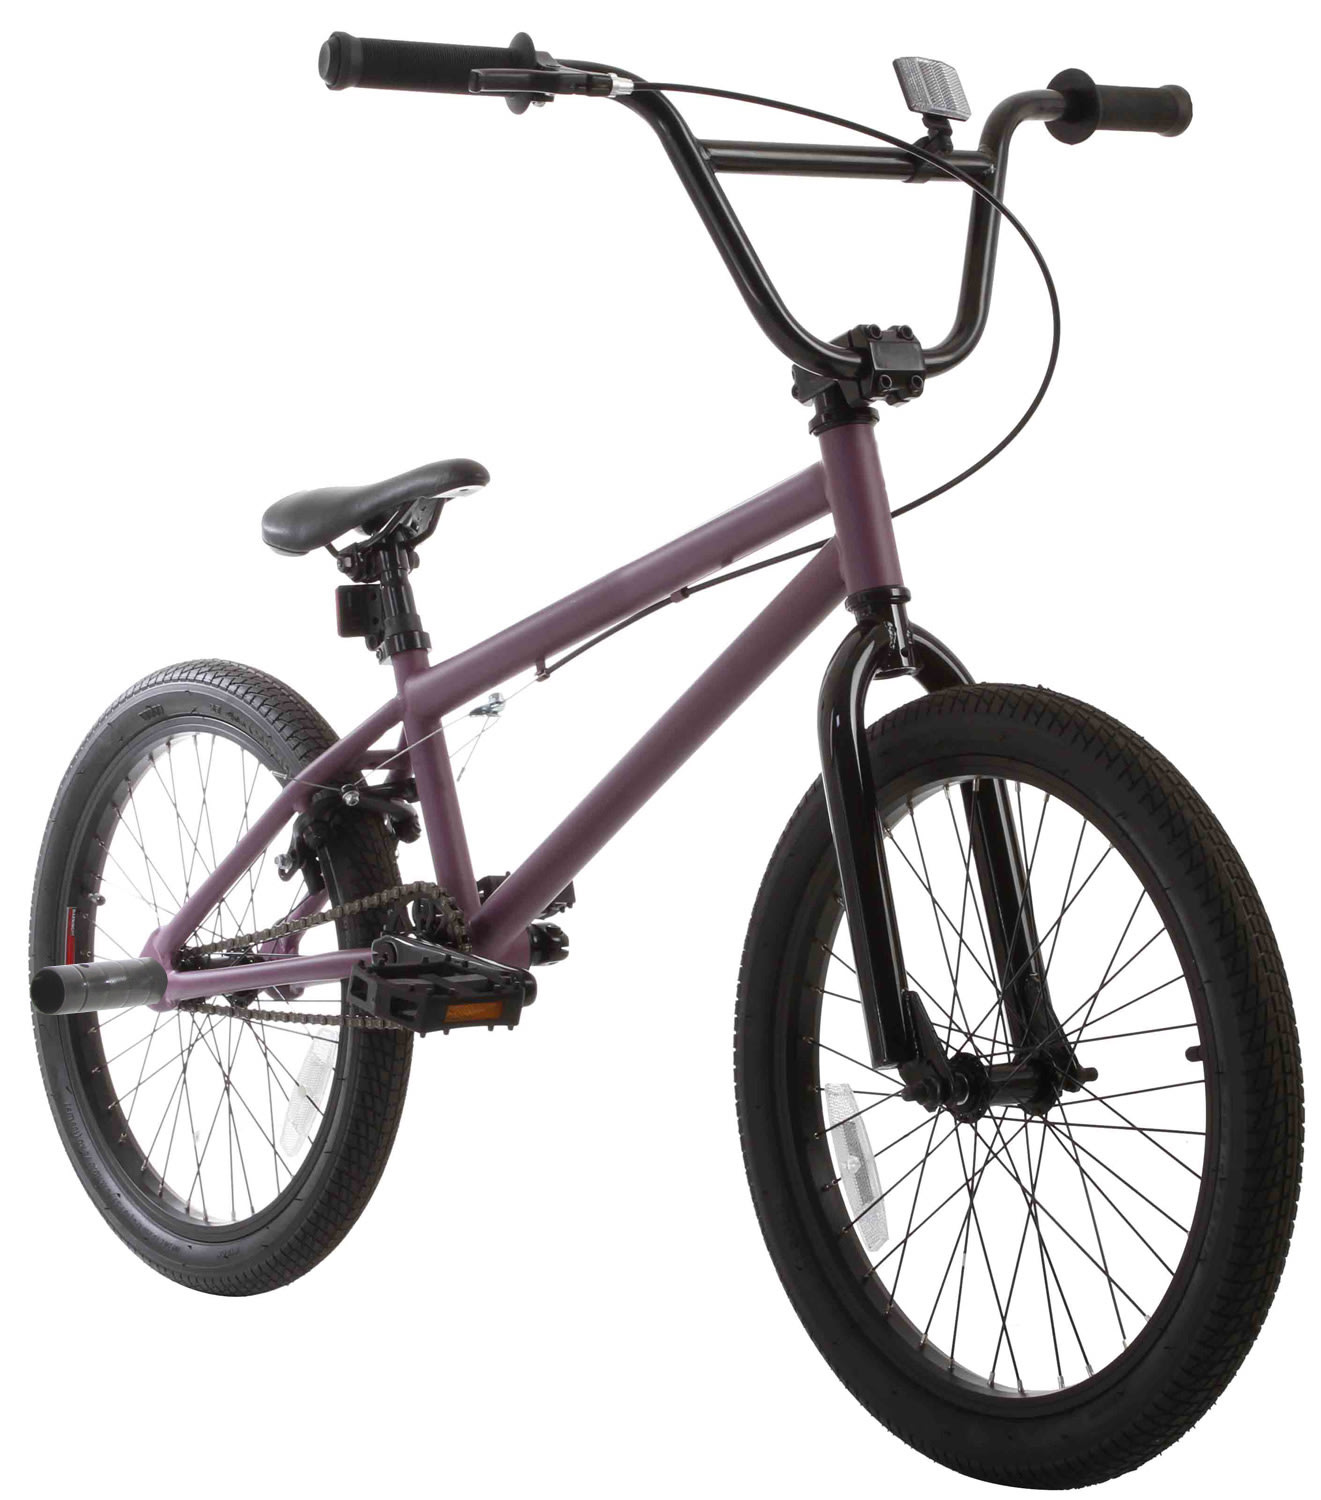 On Sale Grenade Launch Pro X BMX Bike up to 45% off